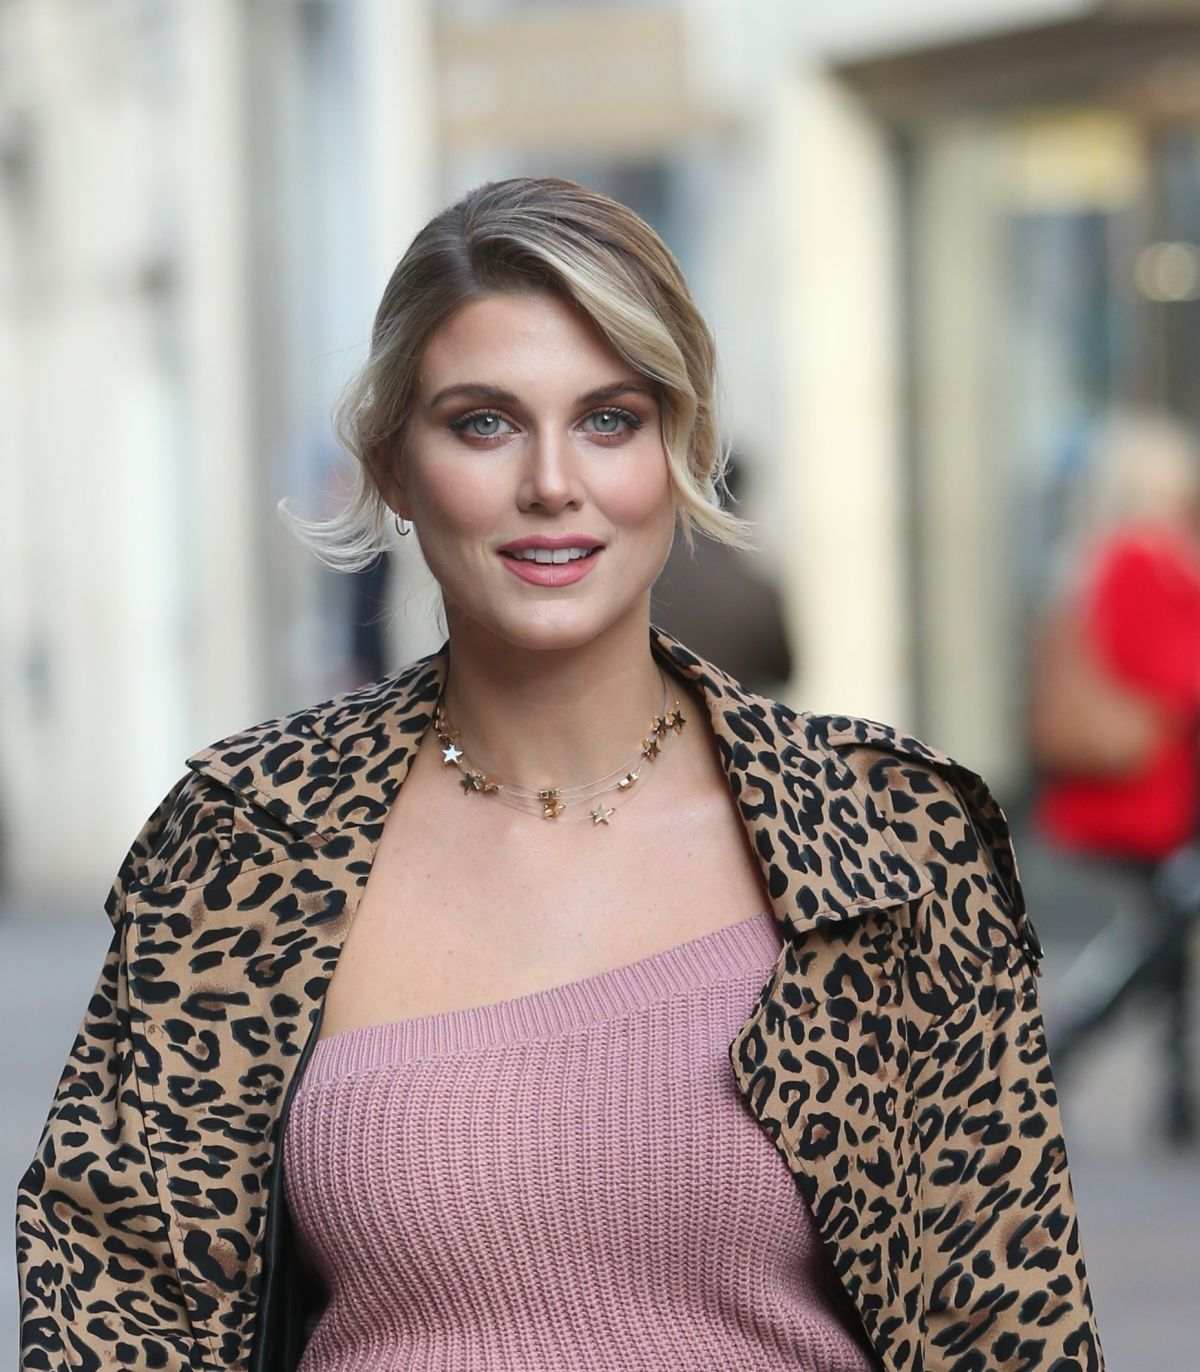 Ashley James Instagram: Made In Chelsea star lets boobs